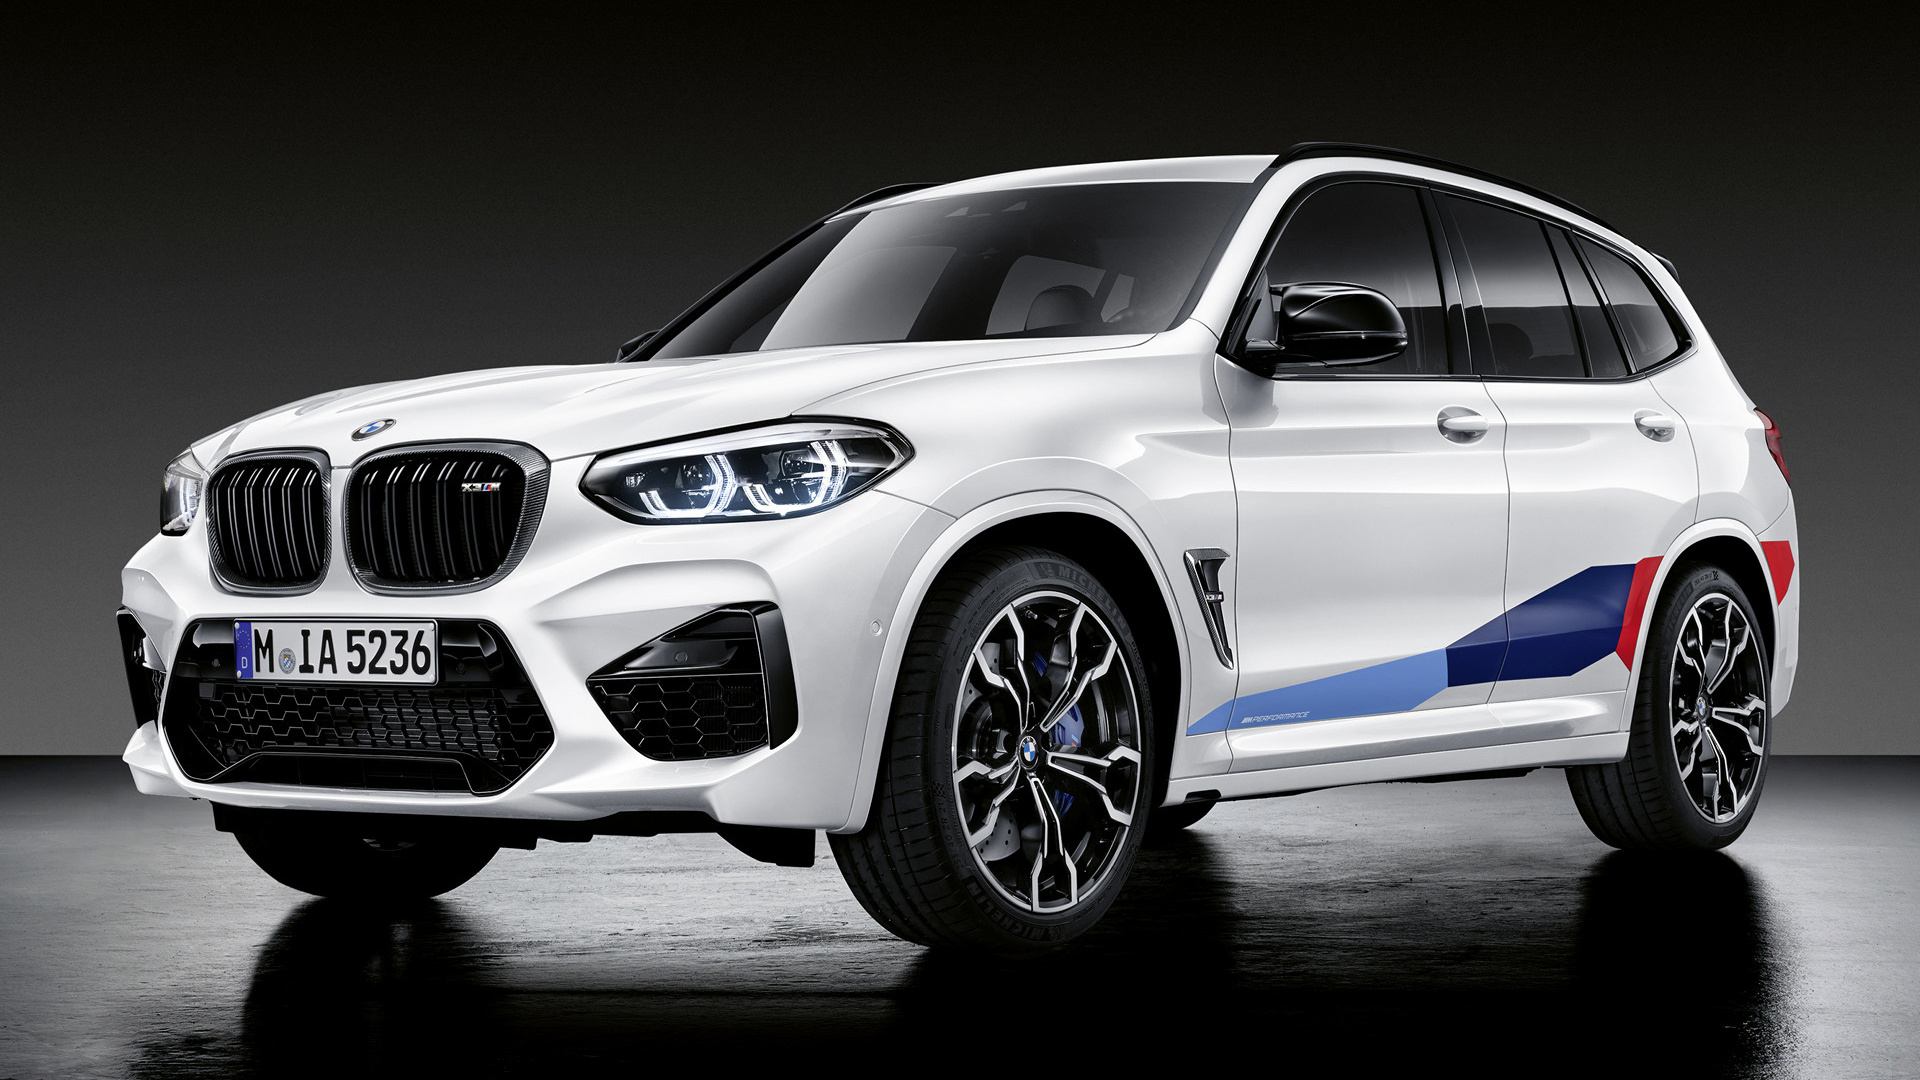 2019 Bmw X3 M With M Performance Parts